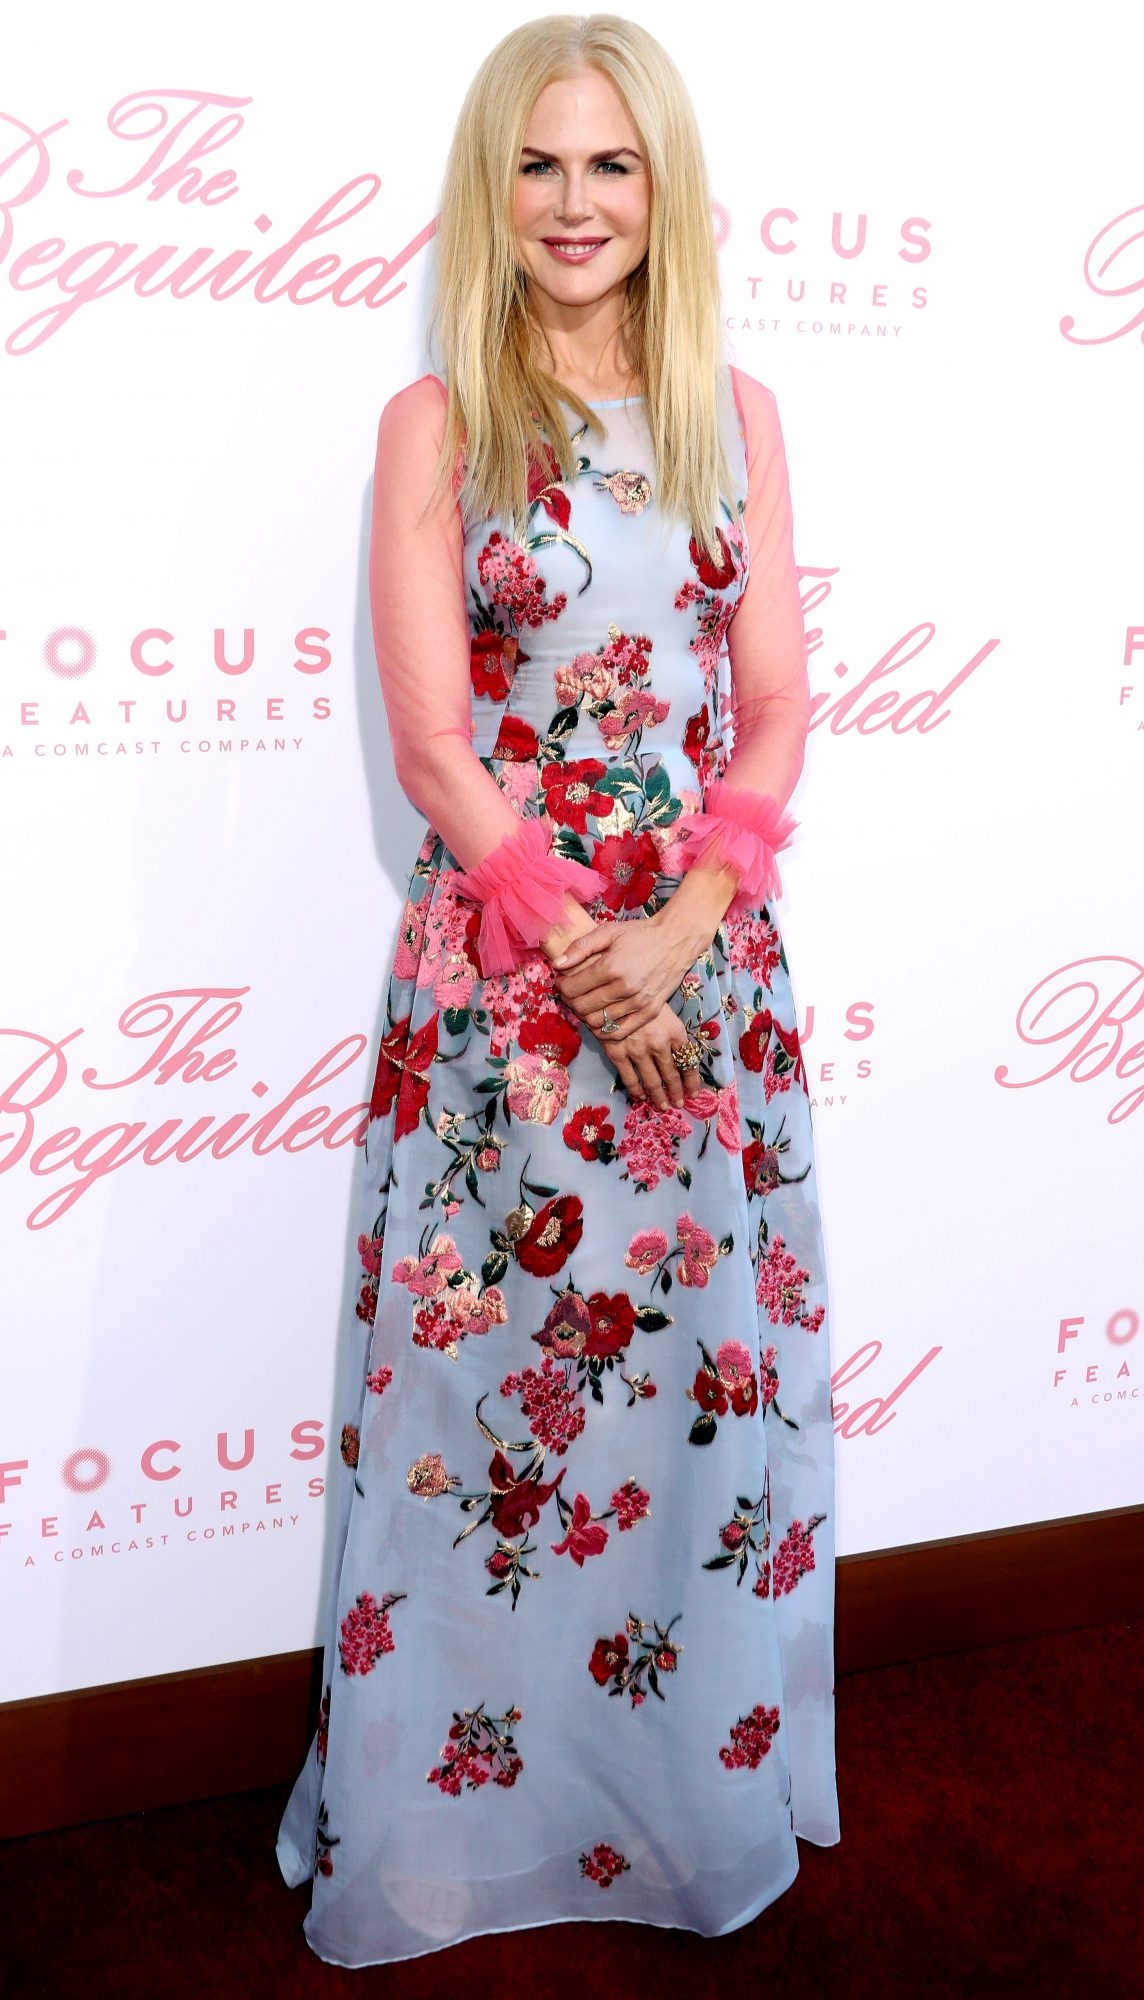 'The Beguiled' film premiere, Arrivals, Los Angeles, USA - 12 Jun 2017